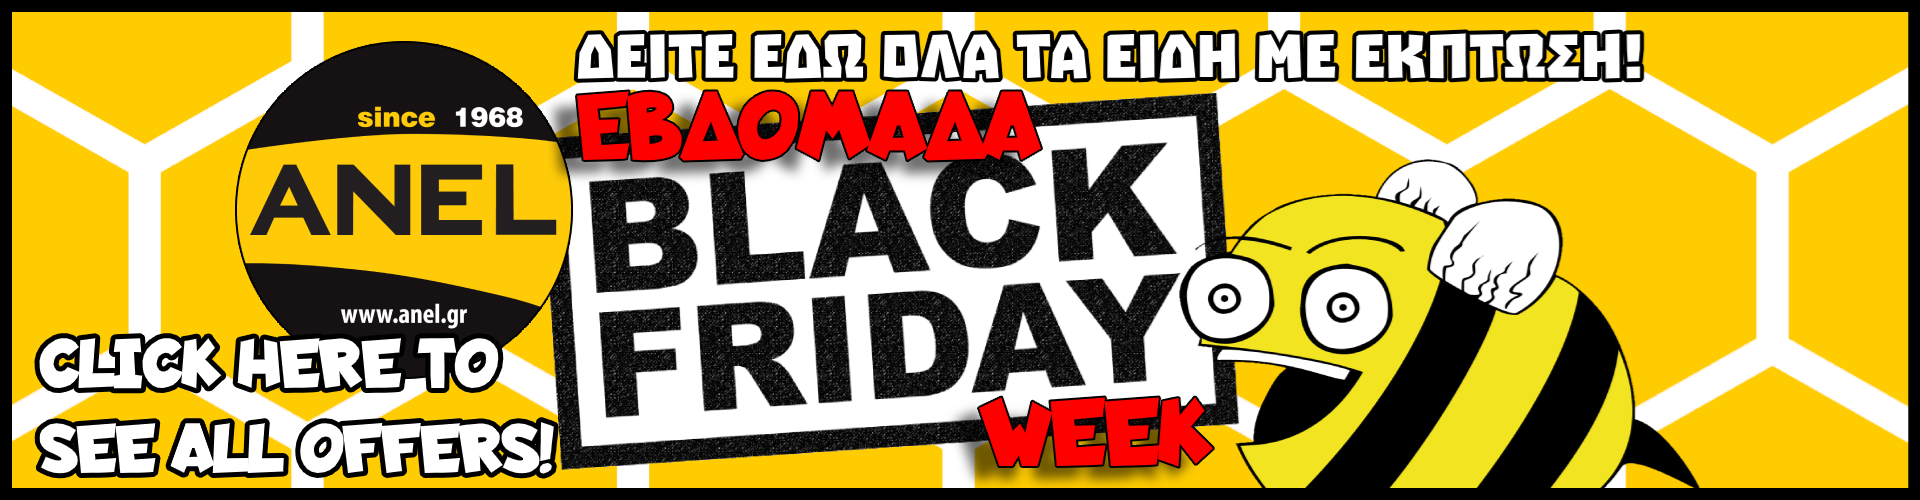 ANEL Black Friday Offers